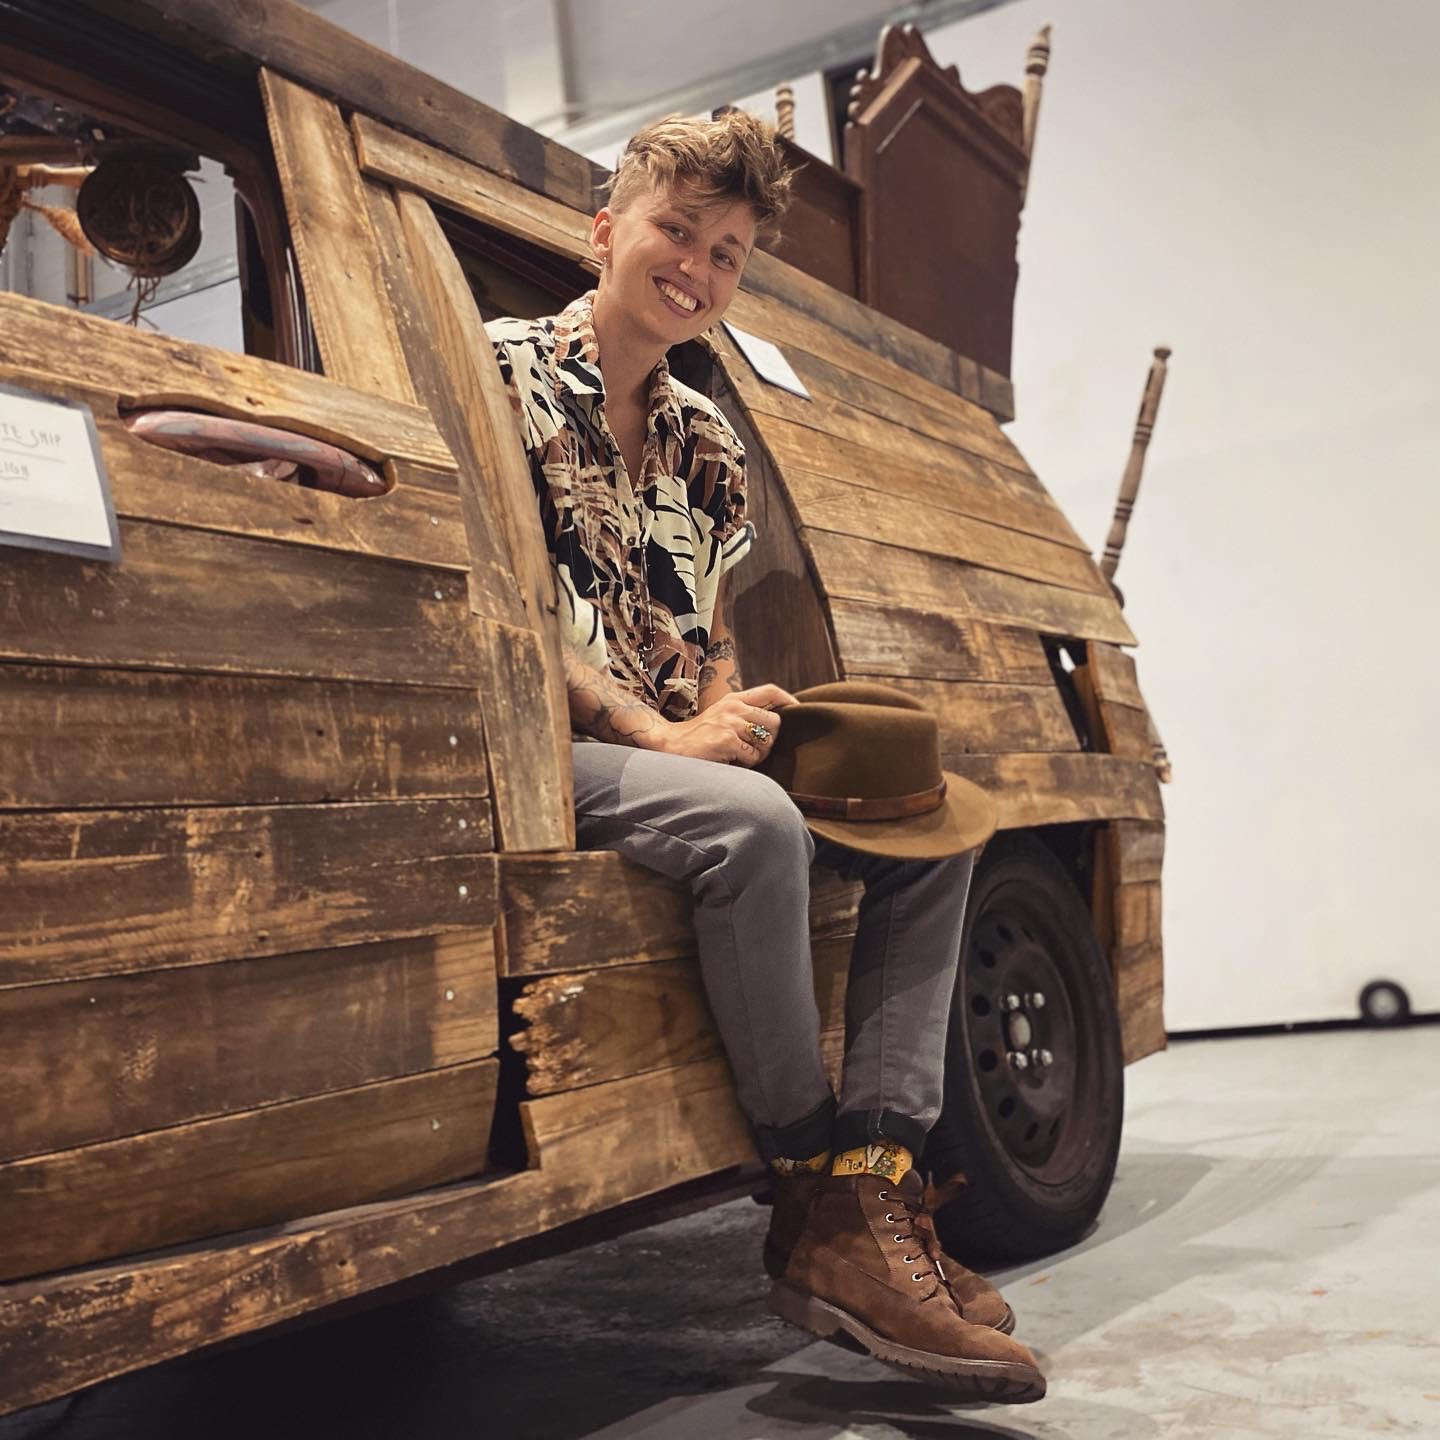 A photo of a person sitting in the wooden facade of a pirate ship/car mobile smiling at the camera.